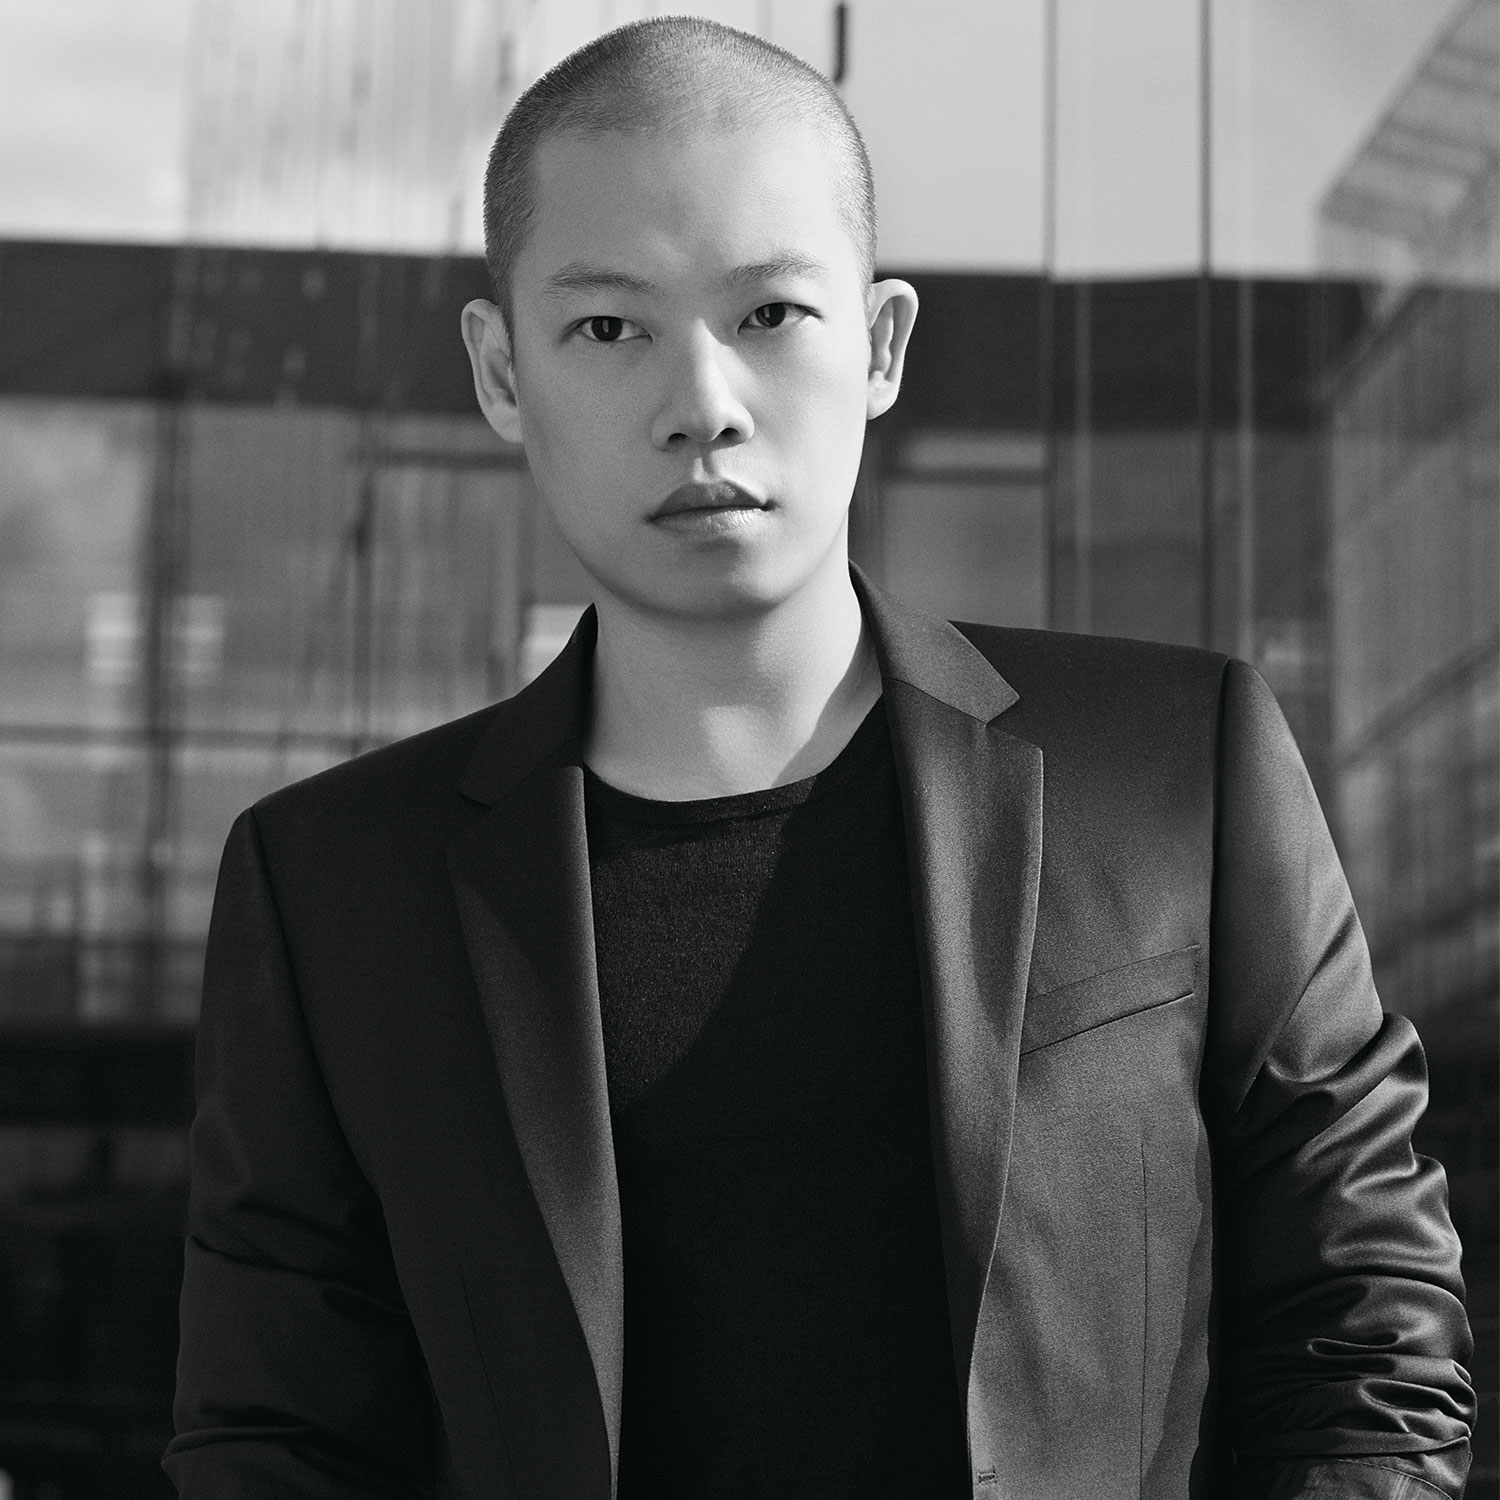 Jason Wu Shares His Daily Routine As A Fashion Designer ...